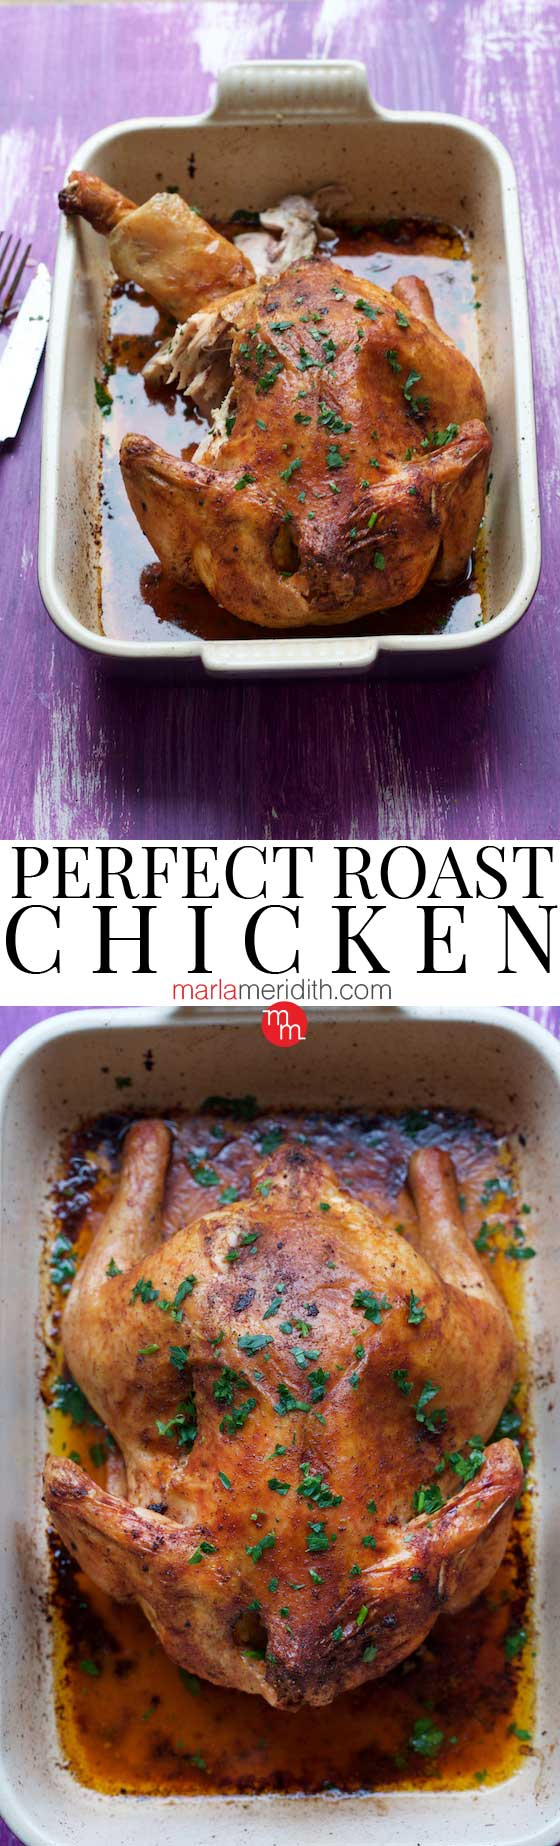 This recipe for Perfect Roast Chicken is essential for the home chef! MarlaMeridith.com #chicken #recipe